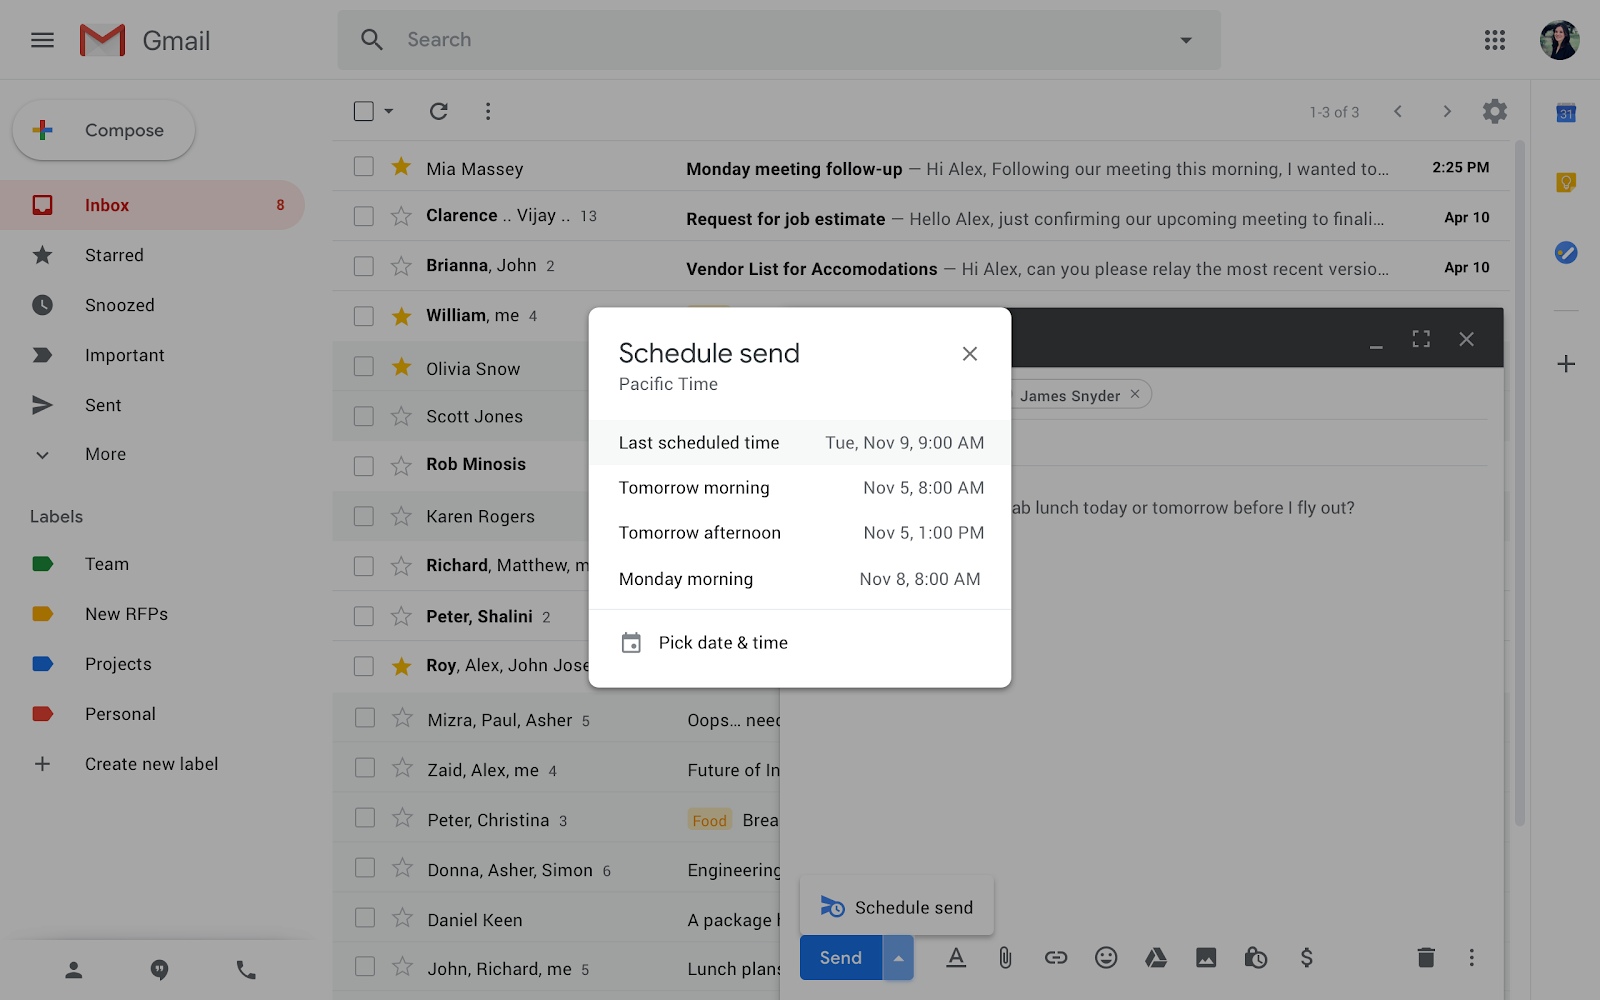 G Suite Updates Blog: Write now, send later with Schedule send in Gmail